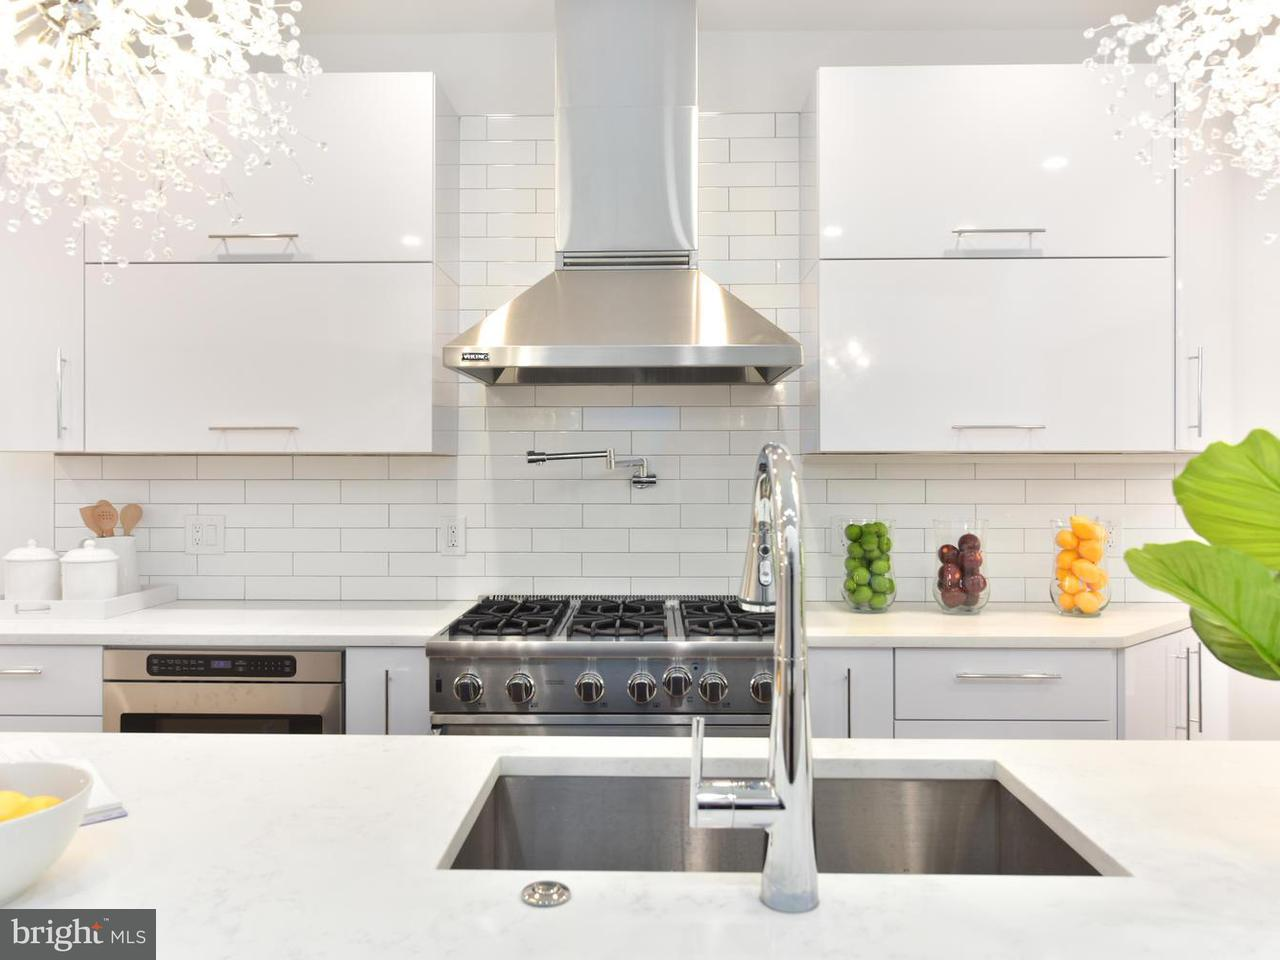 Townhouse for Sale at 2315 ONTARIO RD NW #1 2315 ONTARIO RD NW #1 Washington, District Of Columbia 20009 United States